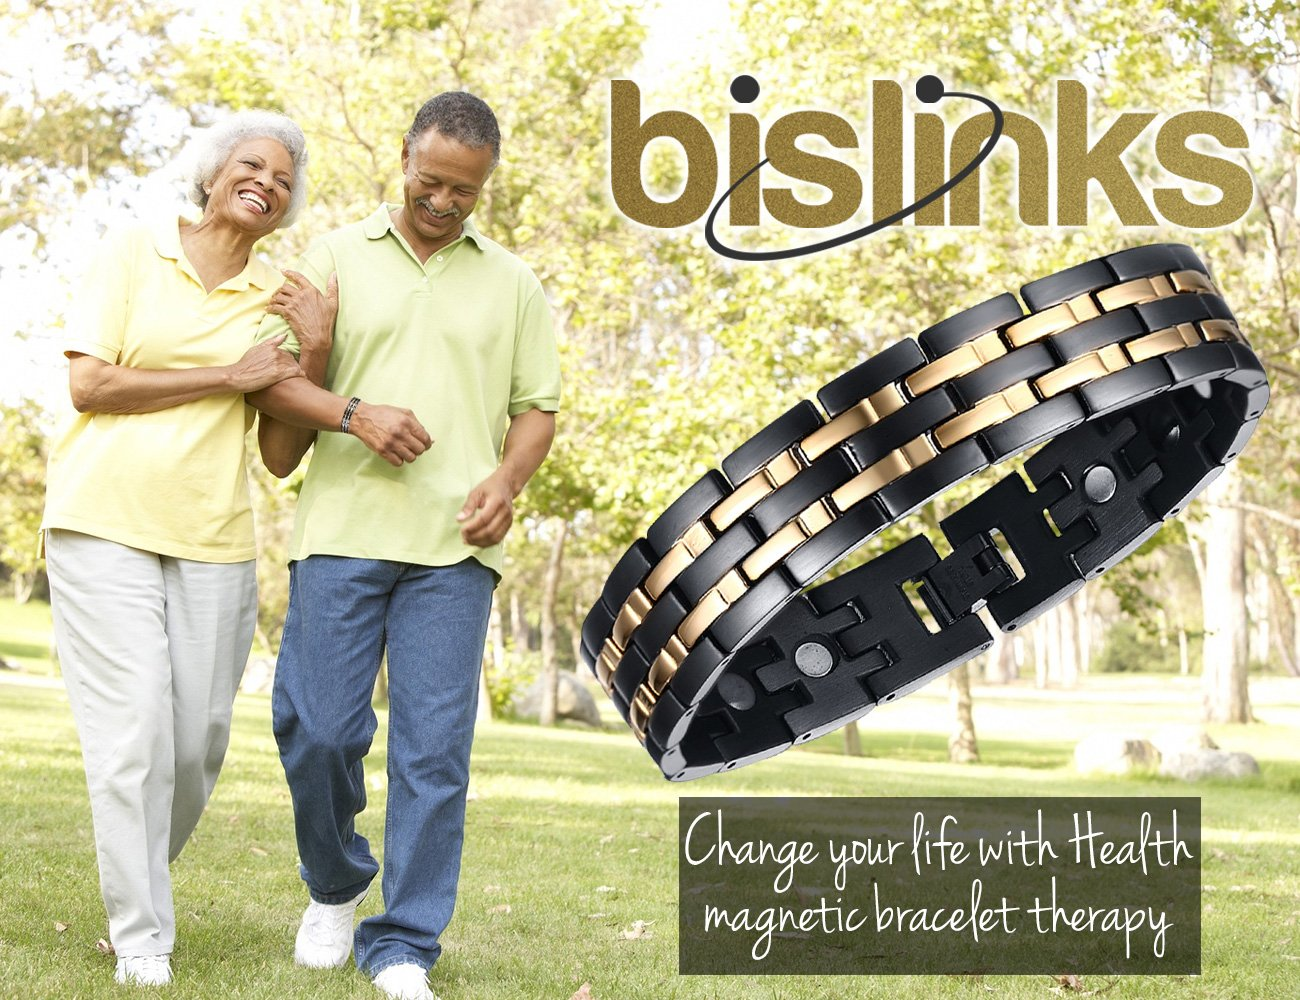 BisLinks® Titanium Magnetic Health Bracelet For Men & Women Germanium Stone Arthritis Chronic Pain Bio Therapy Carpal Tunnel Relief Negative Ion (3000 Gauss Each Magnet) + FREE LINK REMOVAL TOOL by BisLinks® (Image #8)